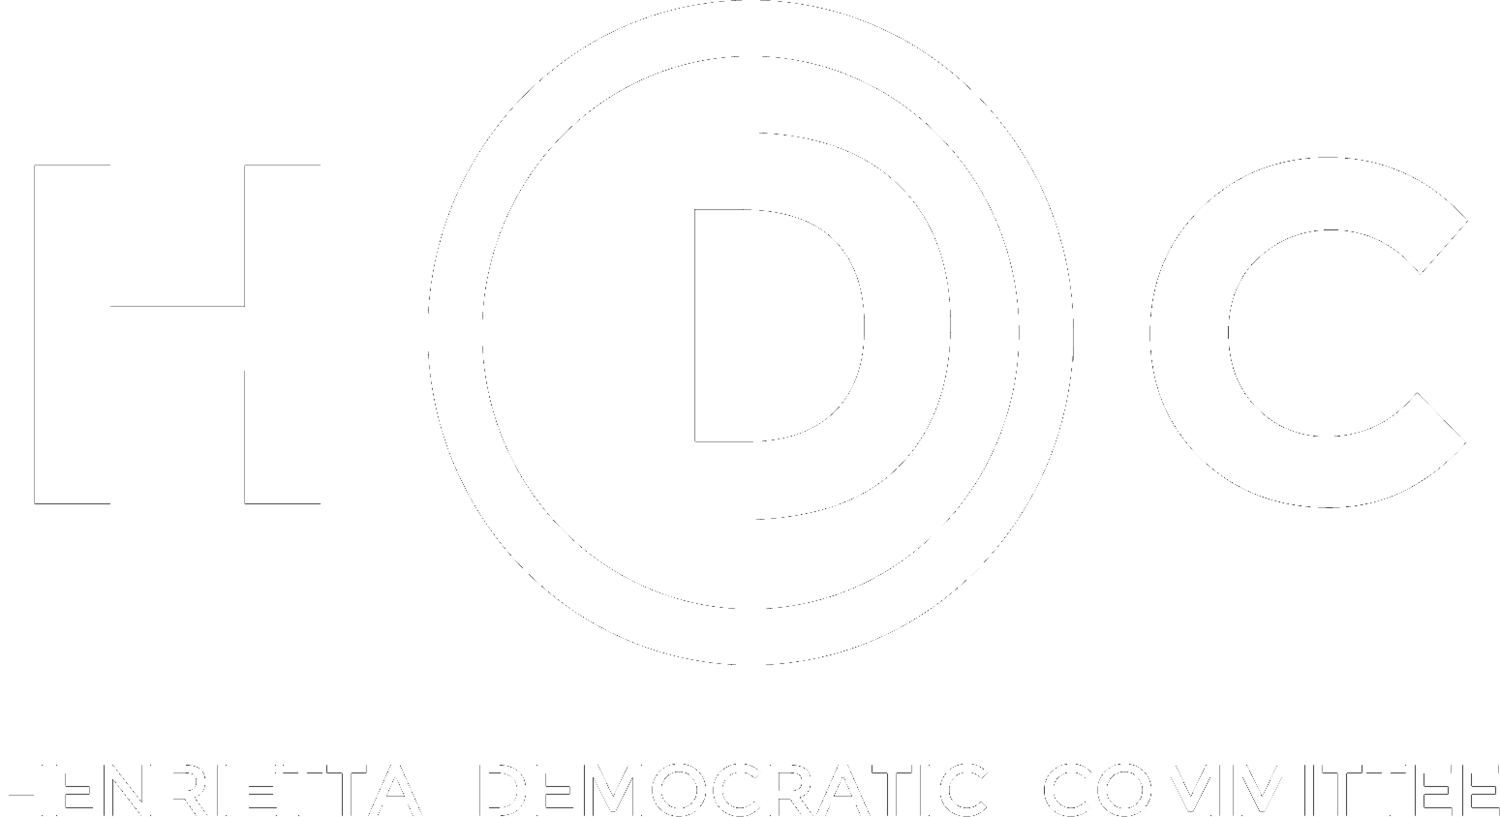 Henrietta Democratic Committee